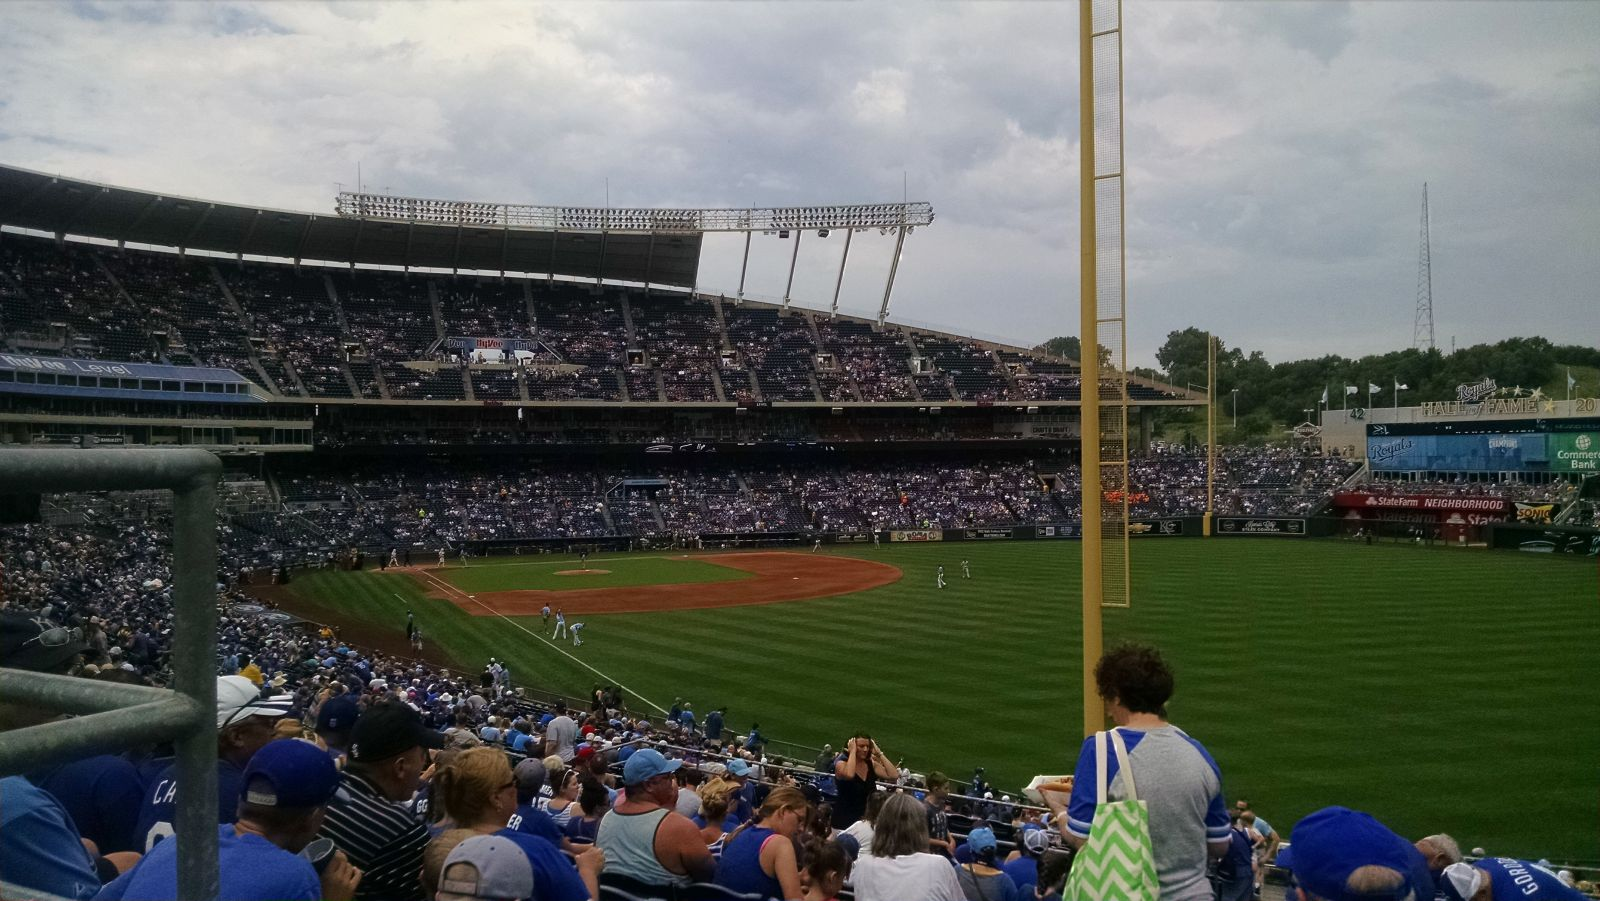 Kauffman Stadium : Row S